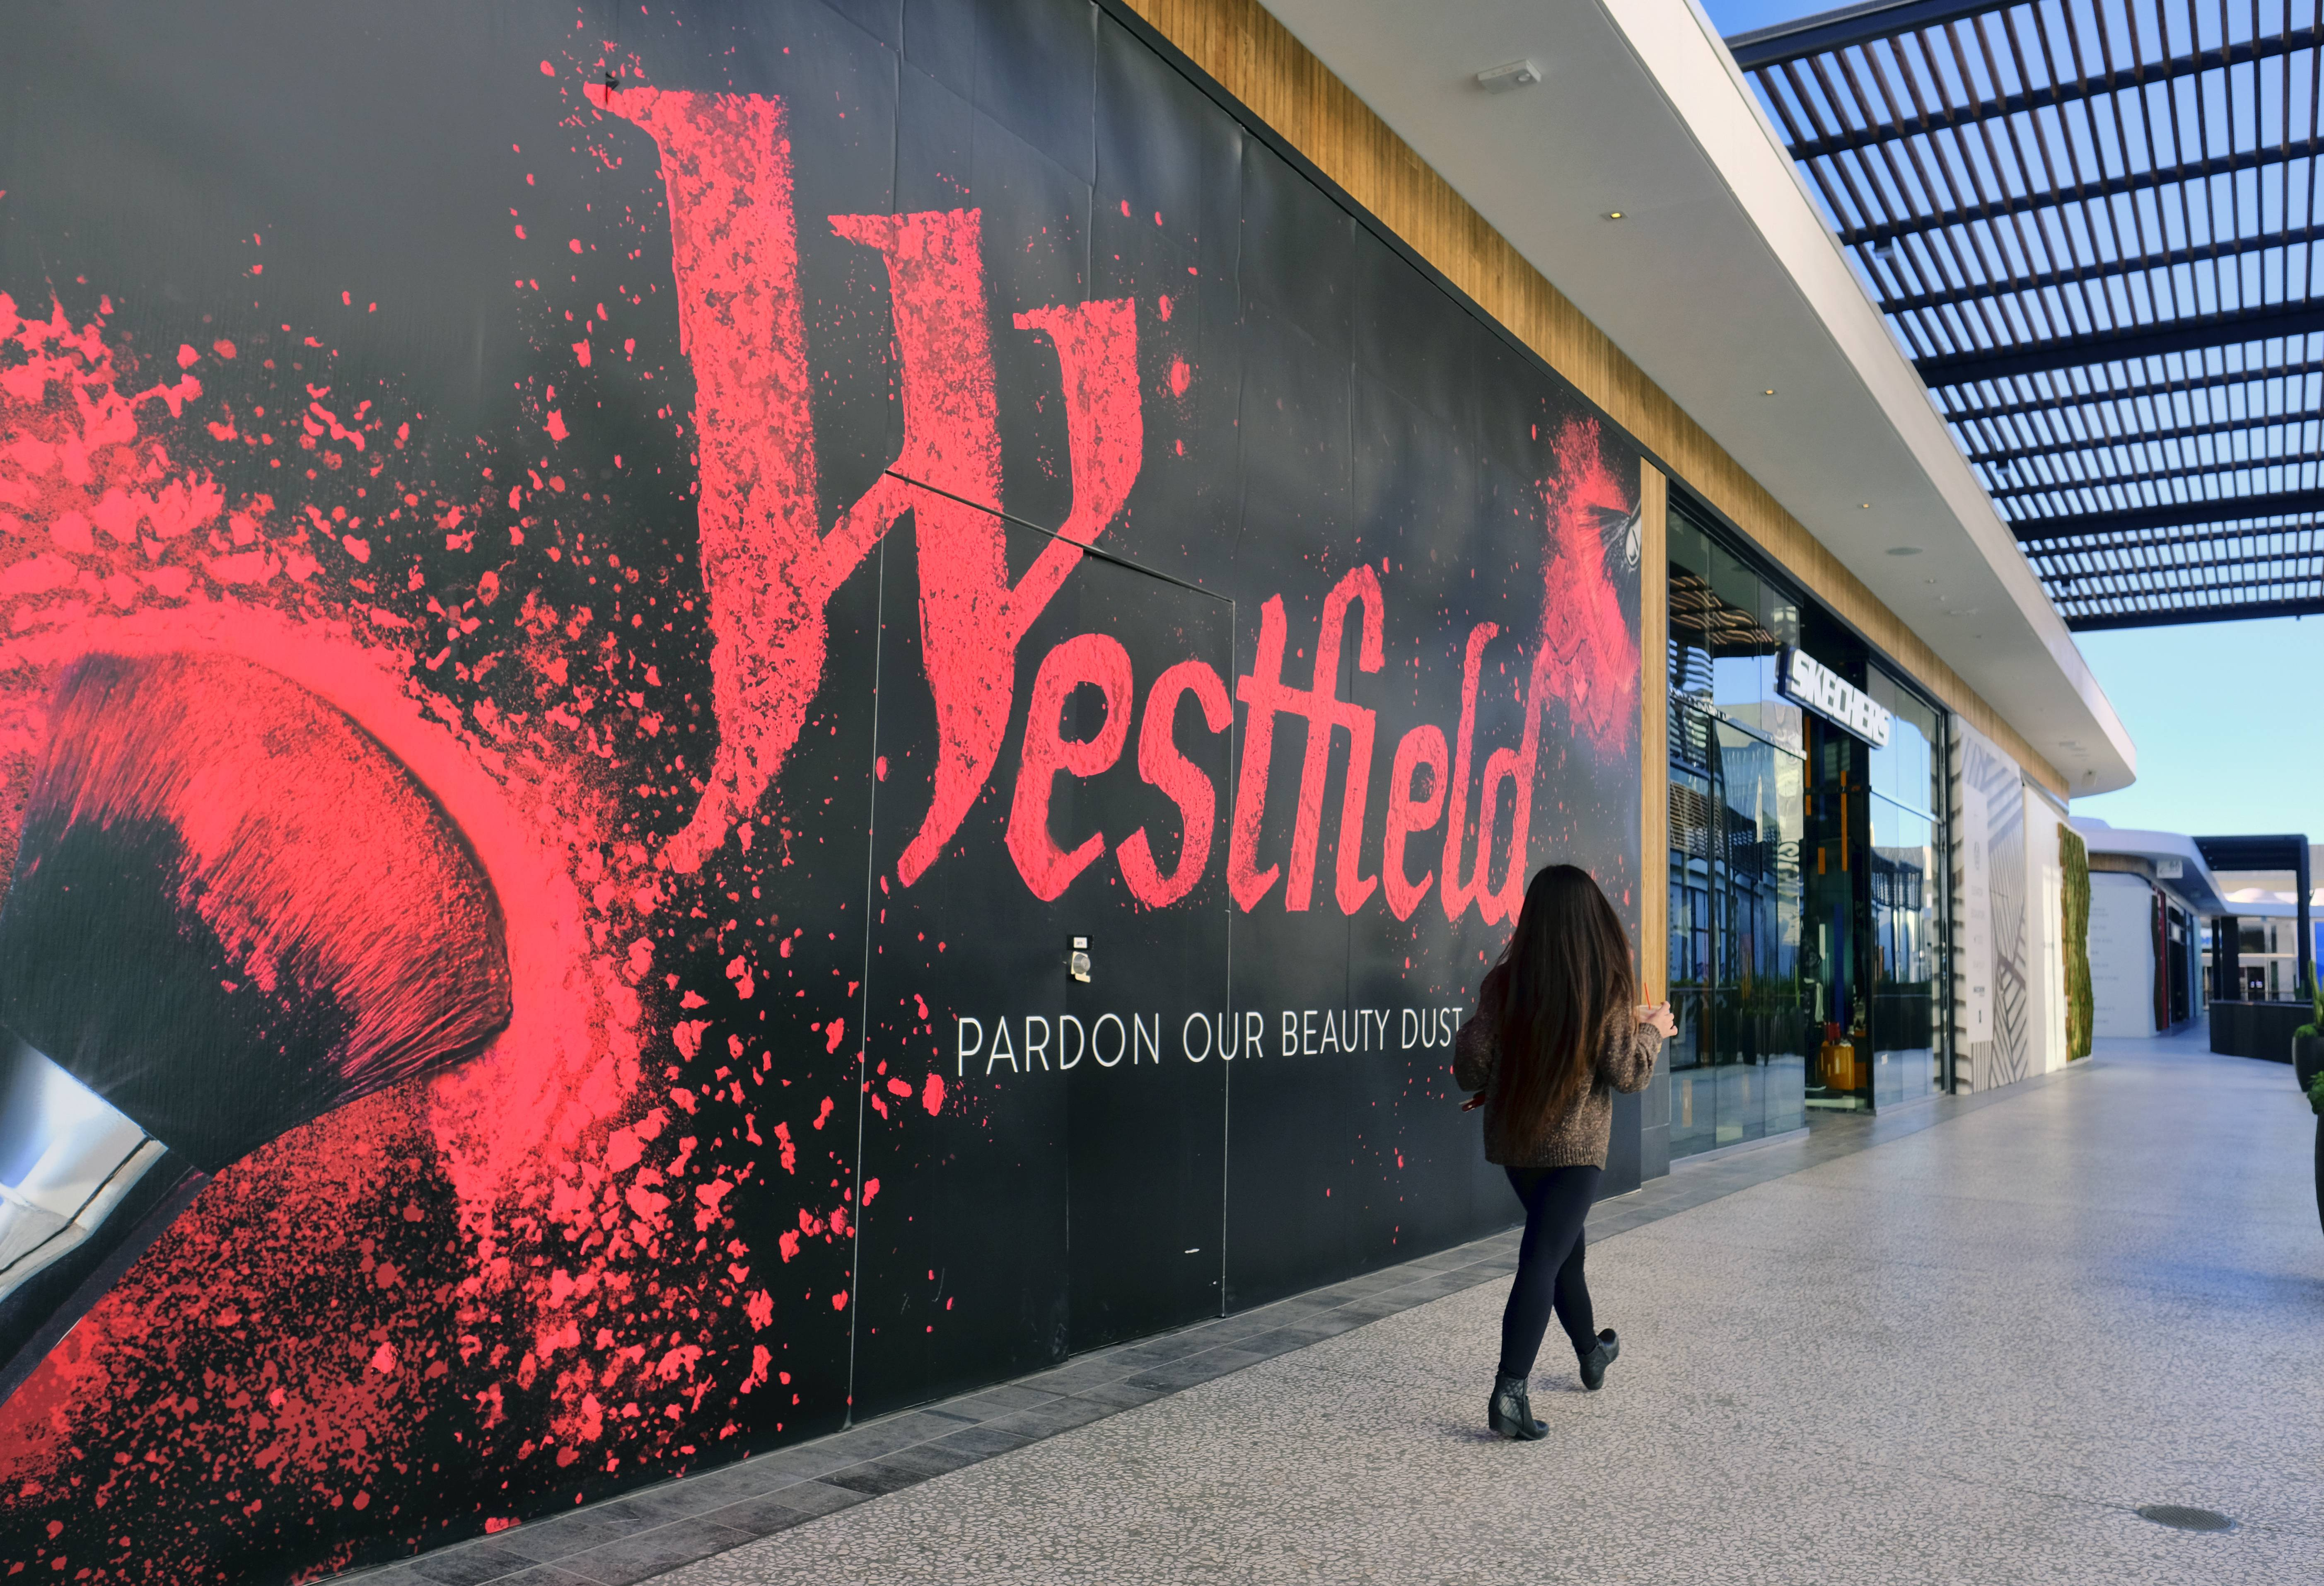 A person walks by a new shop being installed at the Westfield Century City Mall in the Century City section of Los Angeles. Shoppers who brave the crowds at the mall this holiday season may notice changes beyond the seasonal decor and signs advertising big discounts. Many malls have spent billions to transform themselves into destinations where shopping is almost secondary, adding swanky dining options, premium movie theaters and other entertainment options.